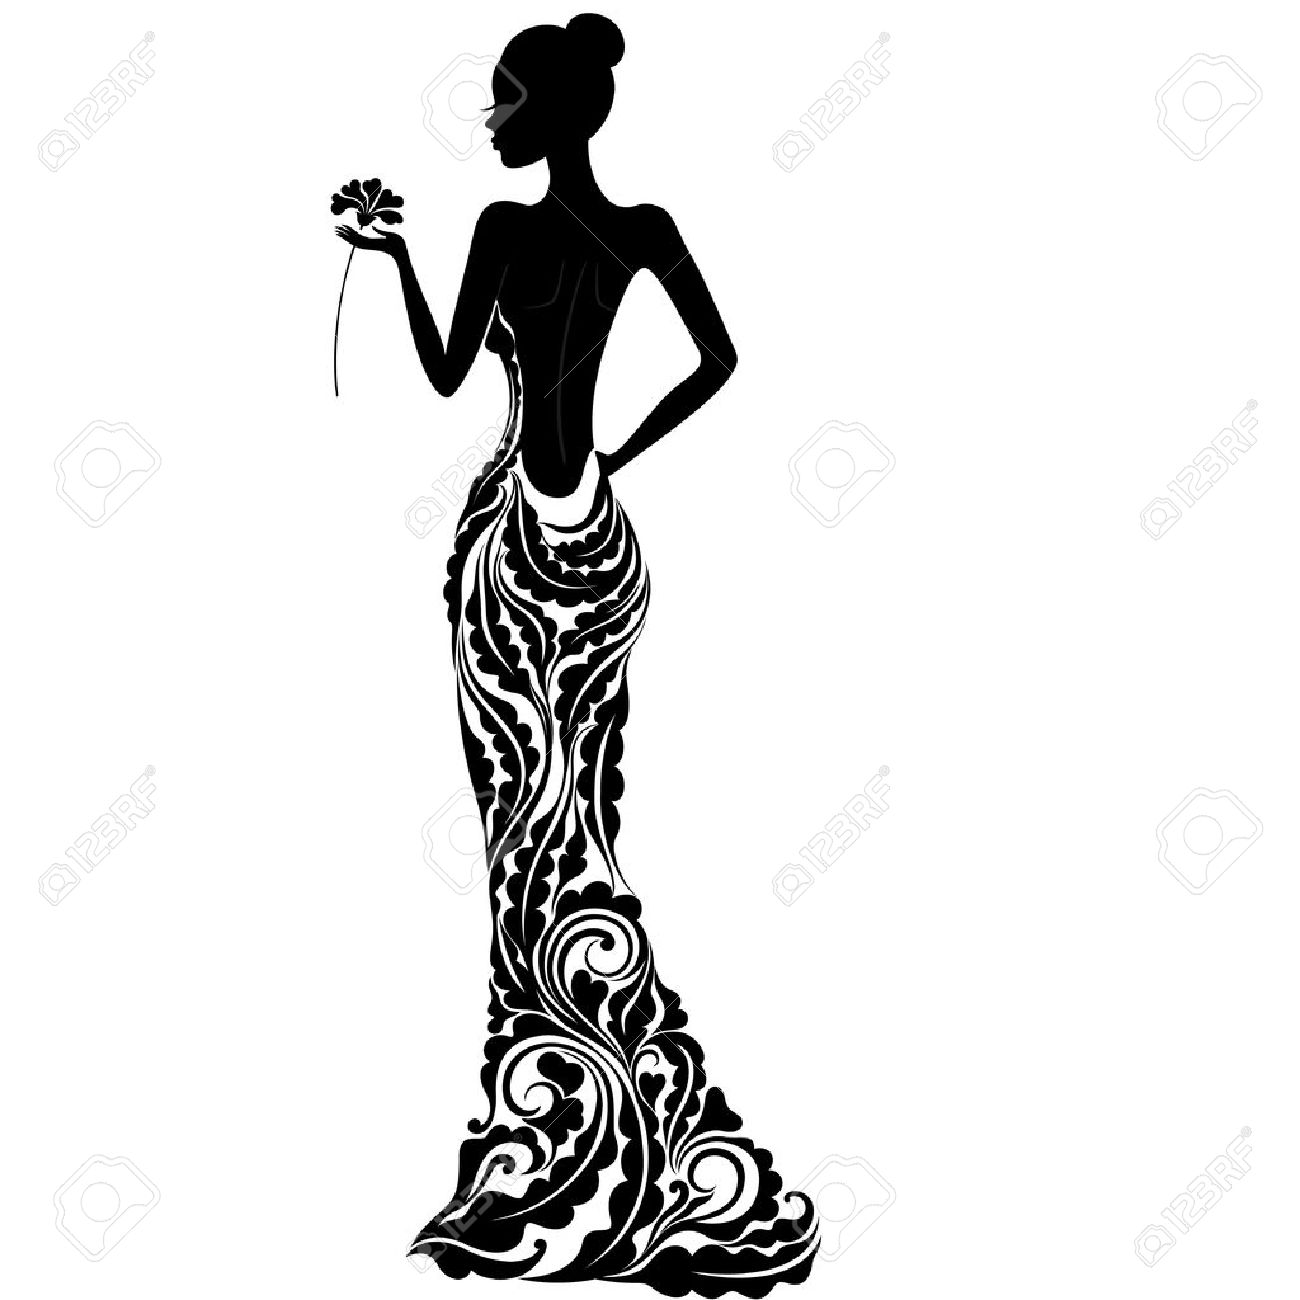 wedding dress silhouette clip art at getdrawings com free for rh getdrawings com girl in prom dress clipart formal dress clipart